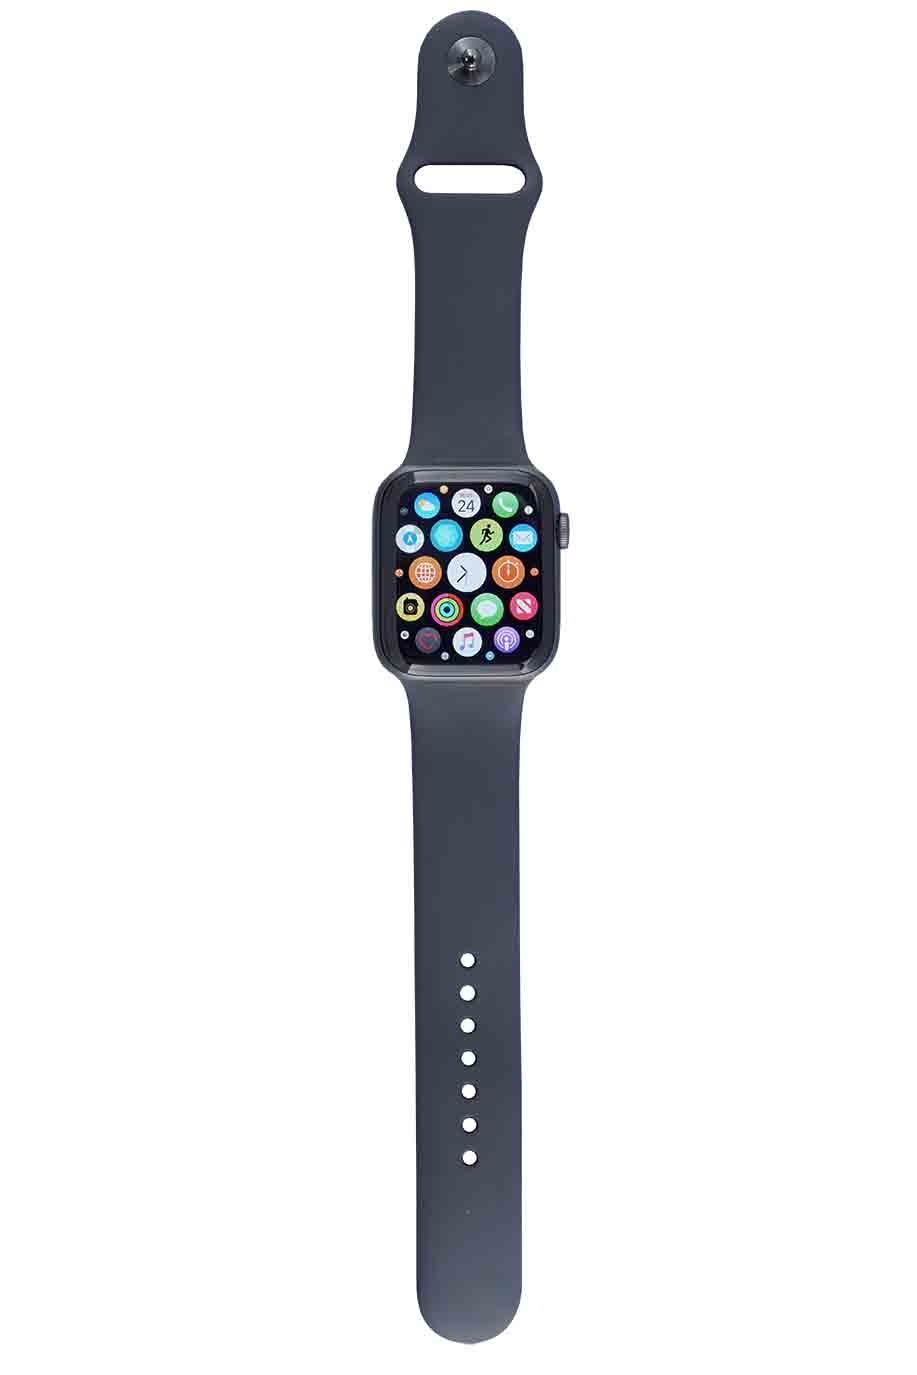 Apple Watch Series 4 w/ Cellular